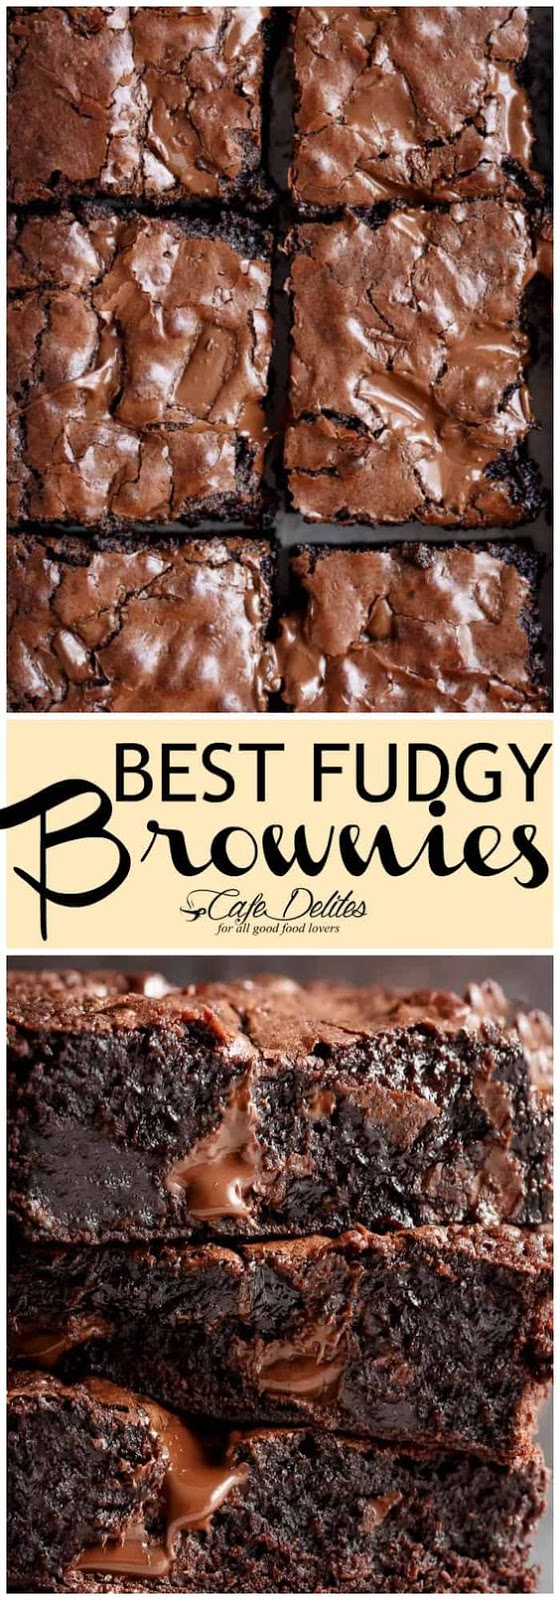 The Best, Fudgy ONE BOWL Cocoa Brownies! A special addition gives these brownies a super fudgy centre without losing that crispy, crackly top!FOR THICKER DOUBLE BATCH BROWNIES